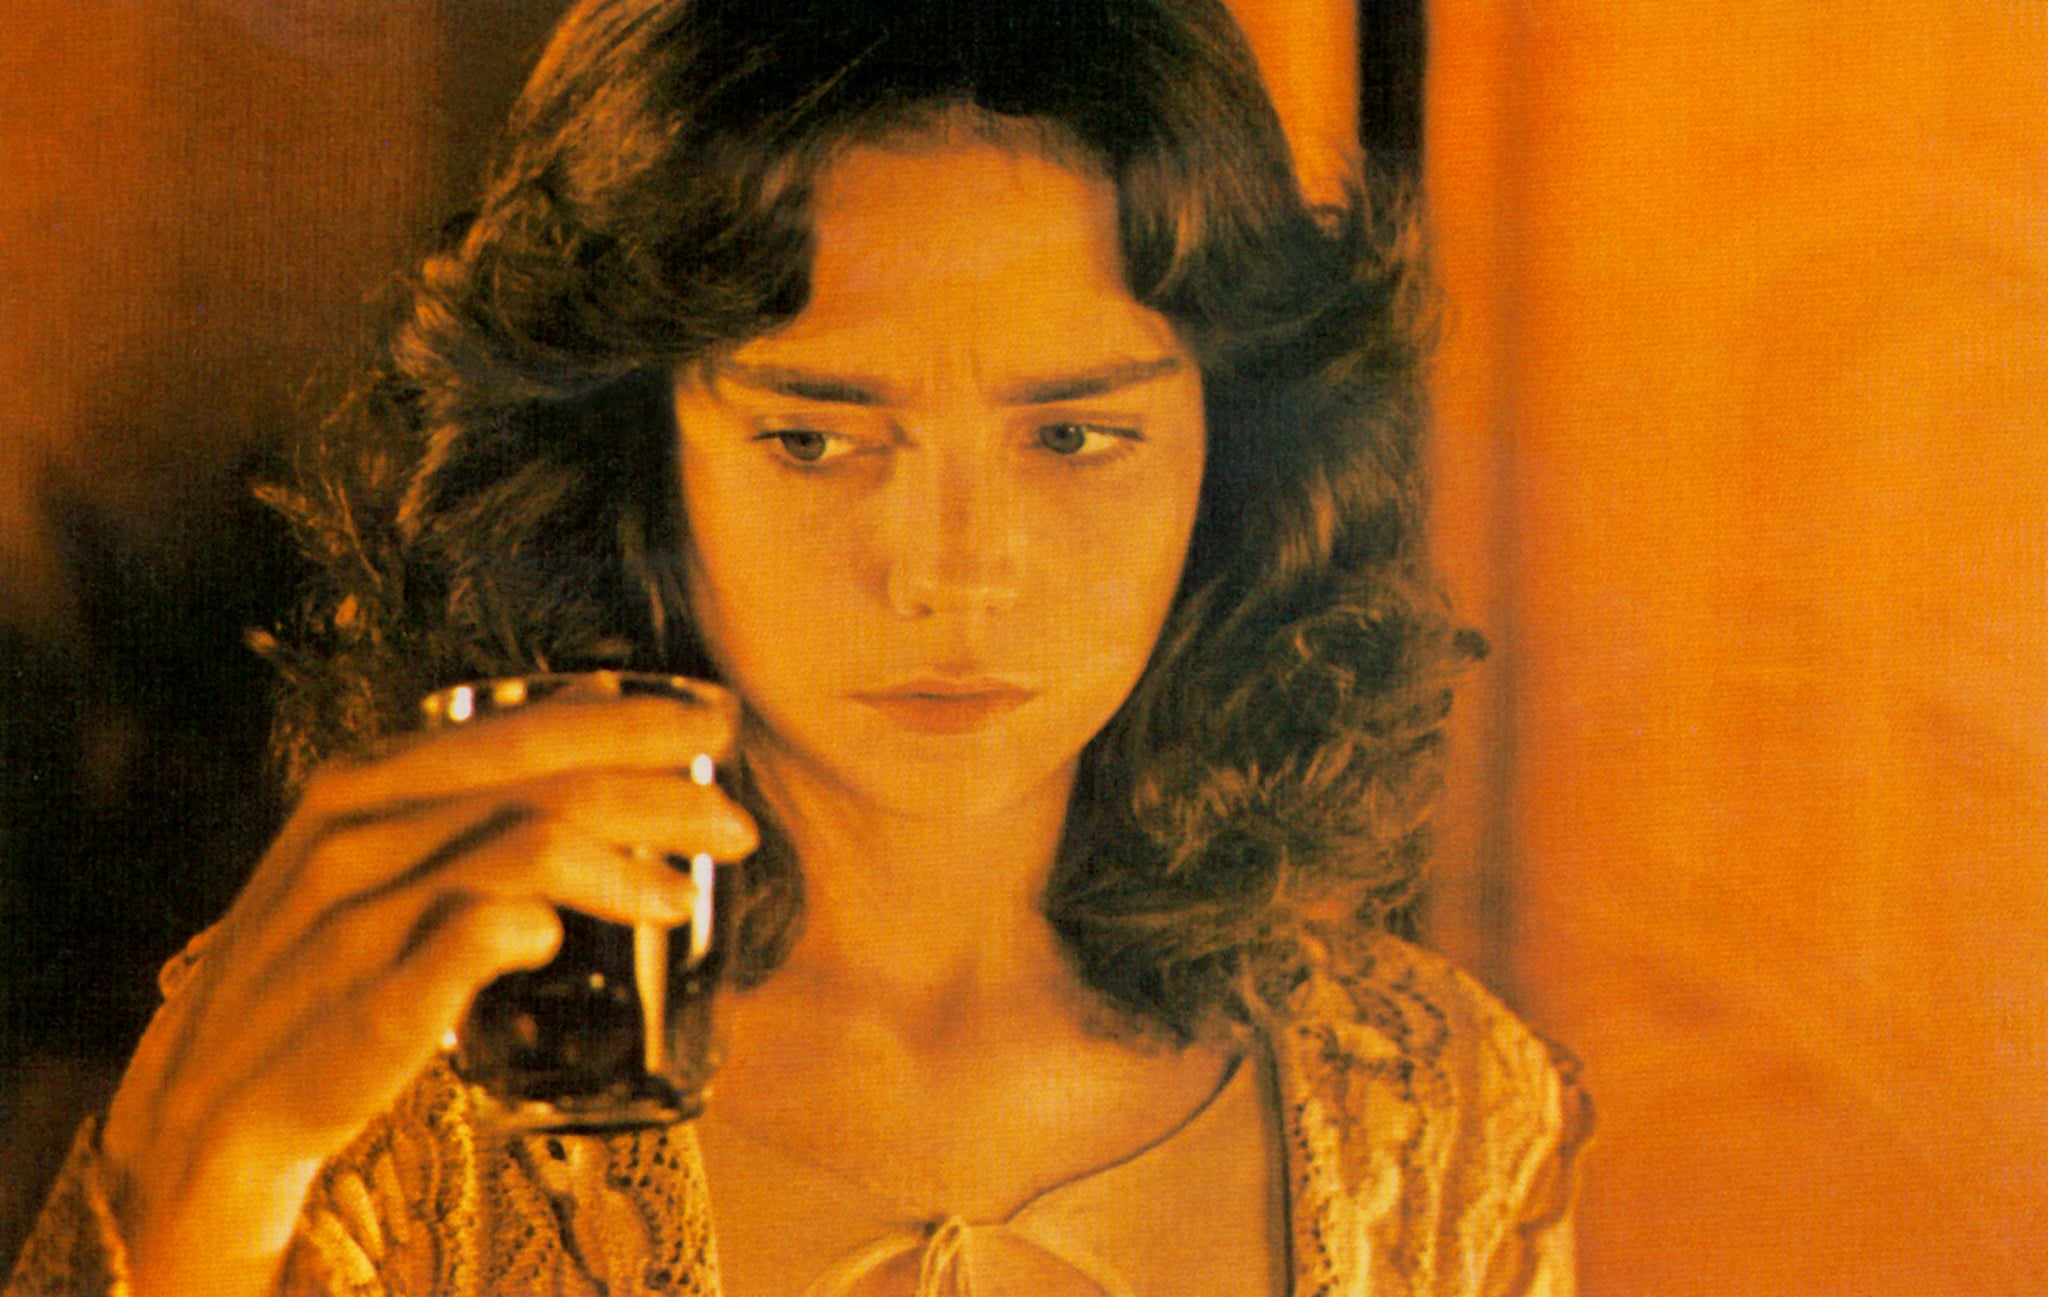 SUSPIRIA, Jessica Harper, 1977. TM and Copyright  20th Century Fox Film Corp. All rights reserved. Courtesy: Everett Collection.